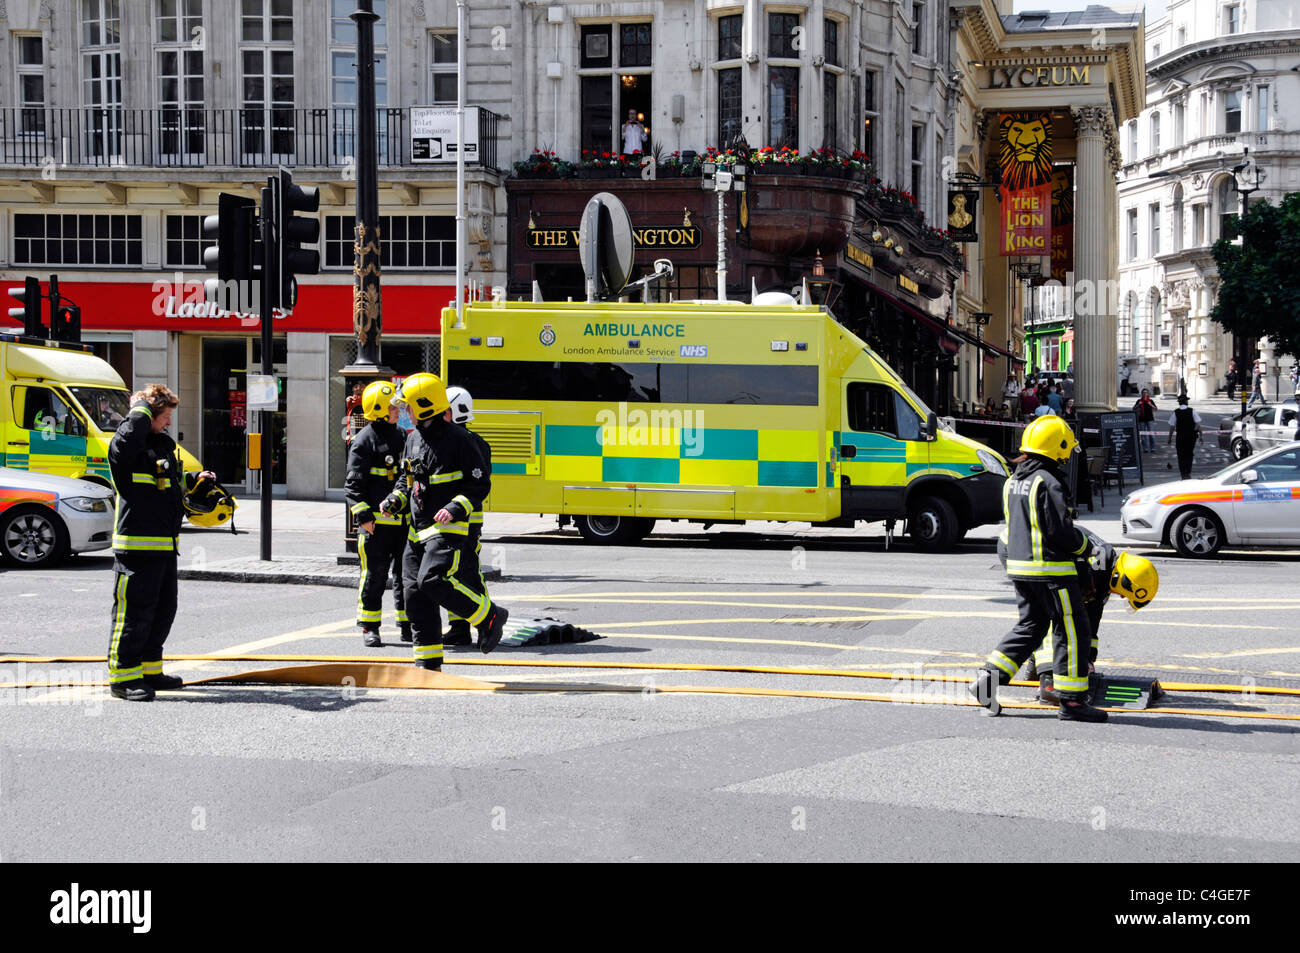 Firemen laying out hoses to fight major fire at Aldwych London ambulance control vehicle beyond - Stock Image